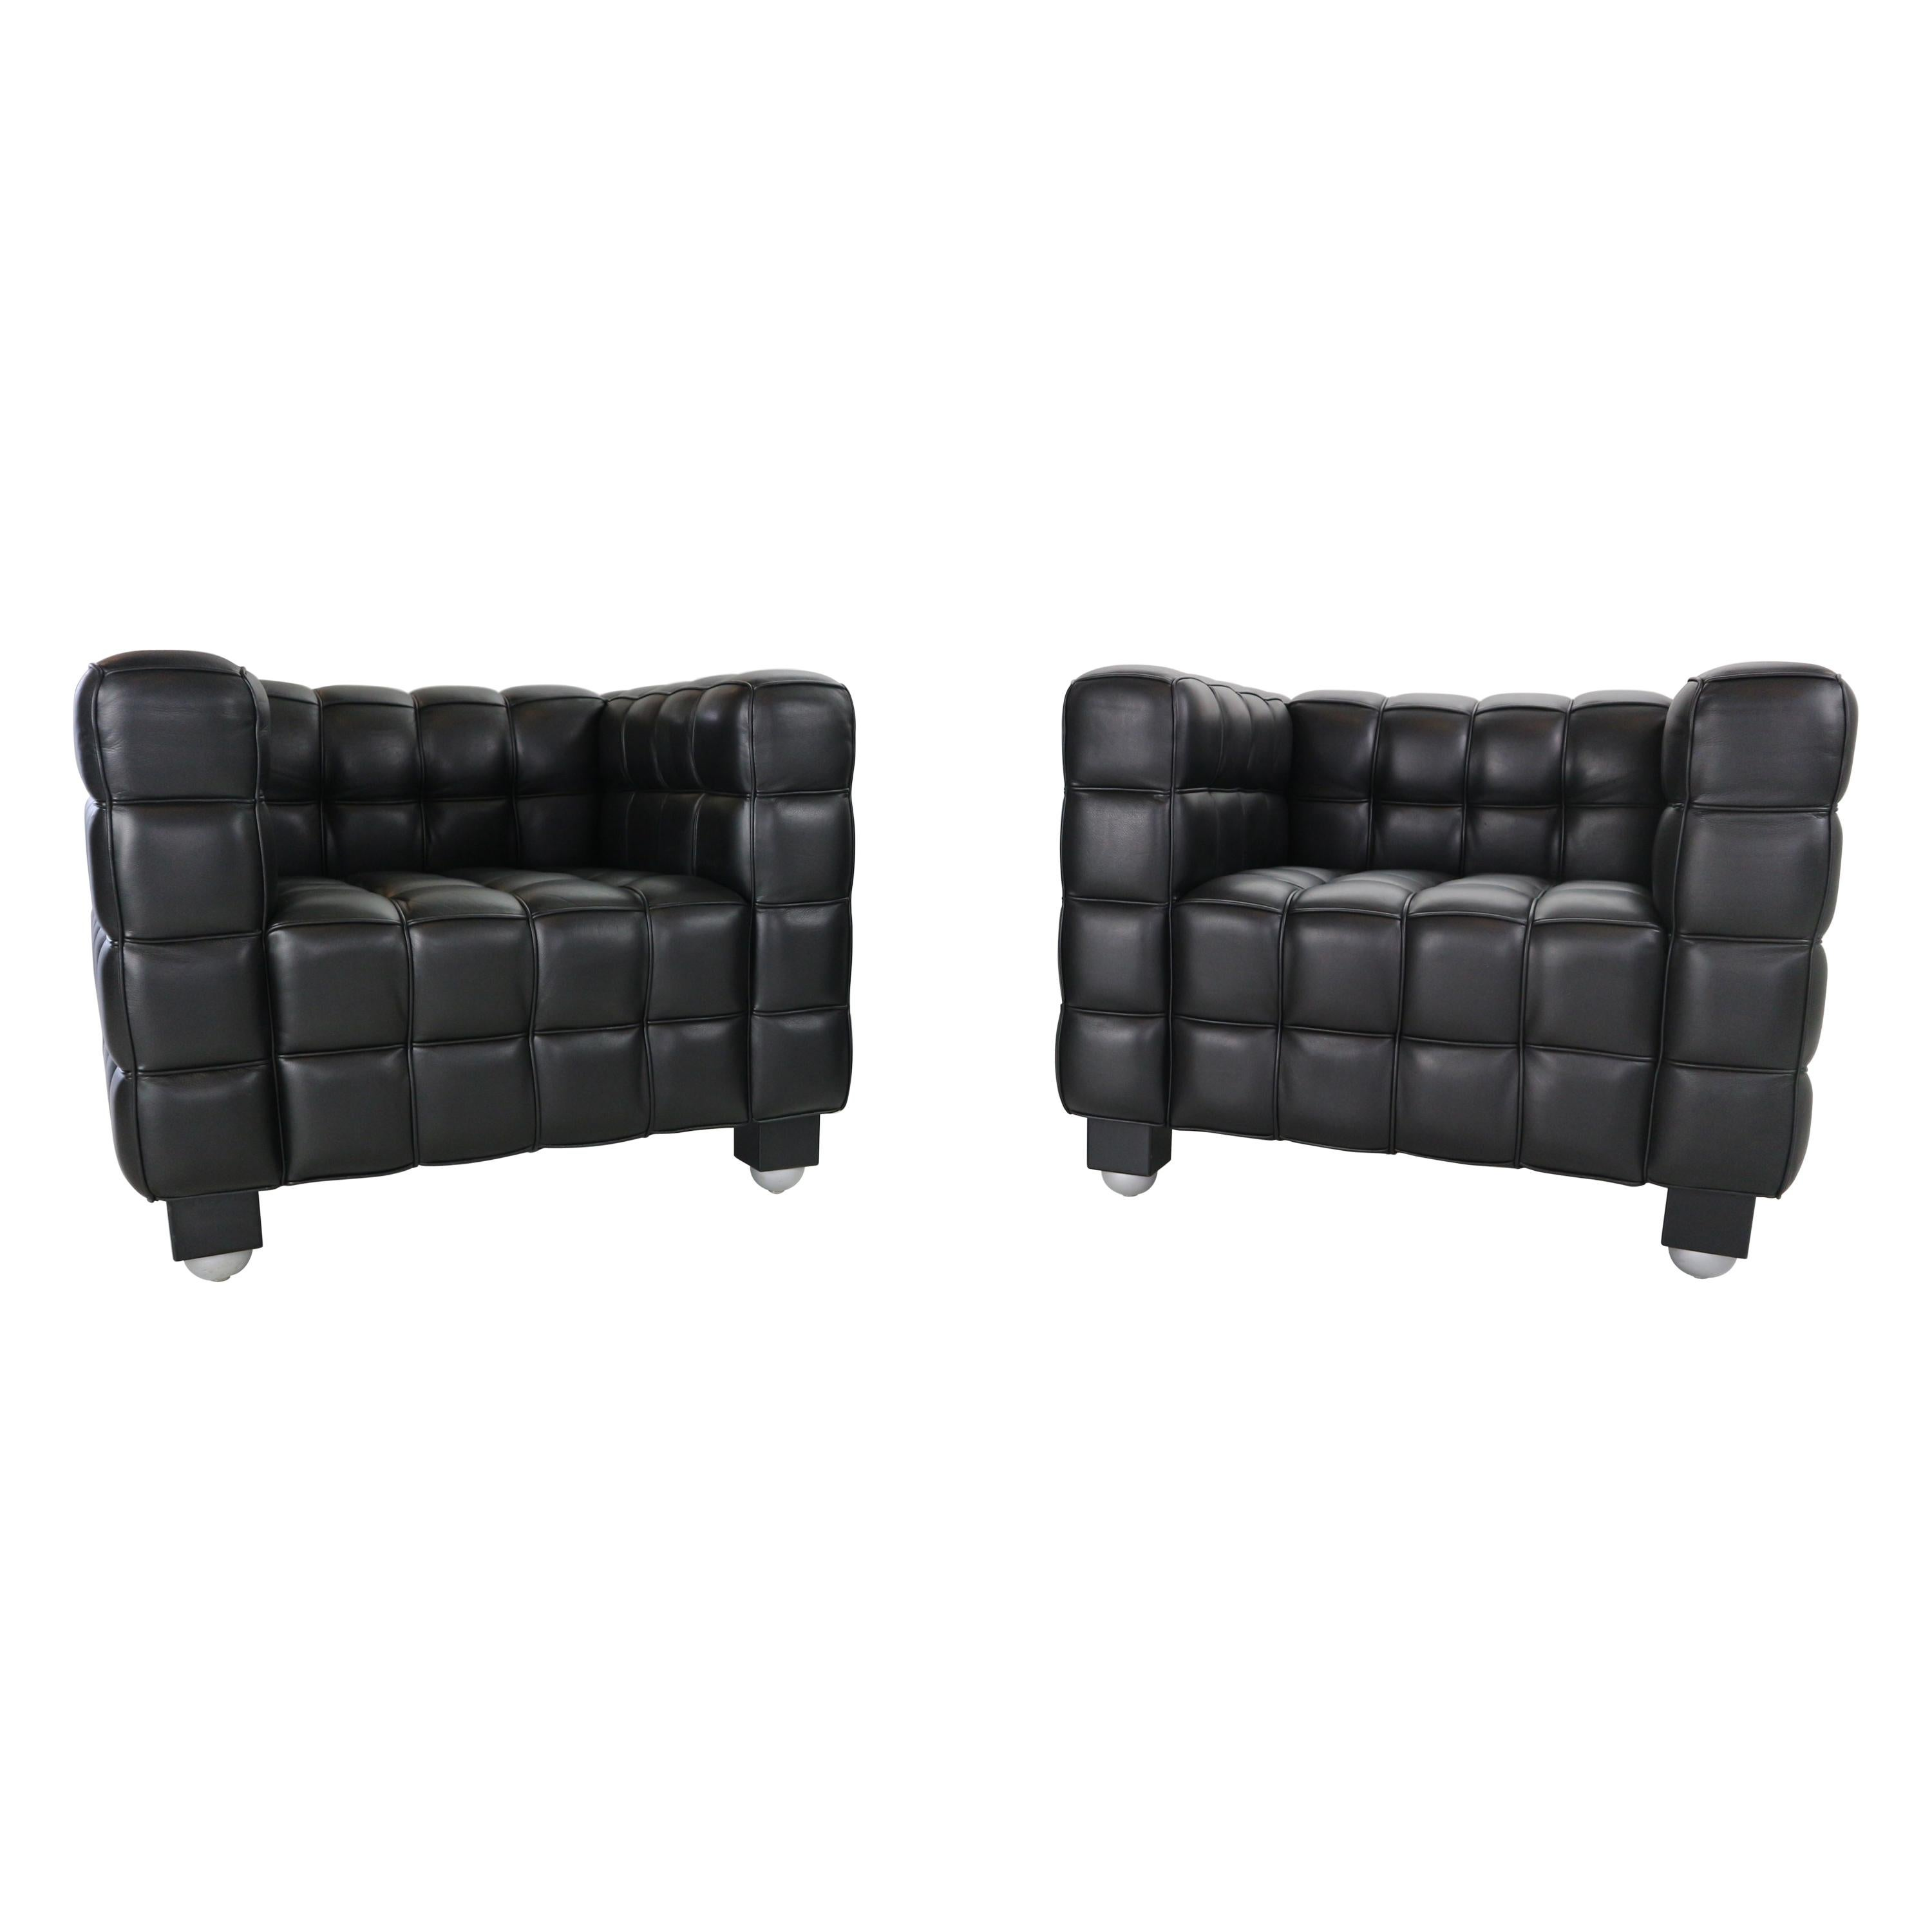 "Josef Hoffmann Black Leather ""Kubus"" Club Chairs for Wittmann"